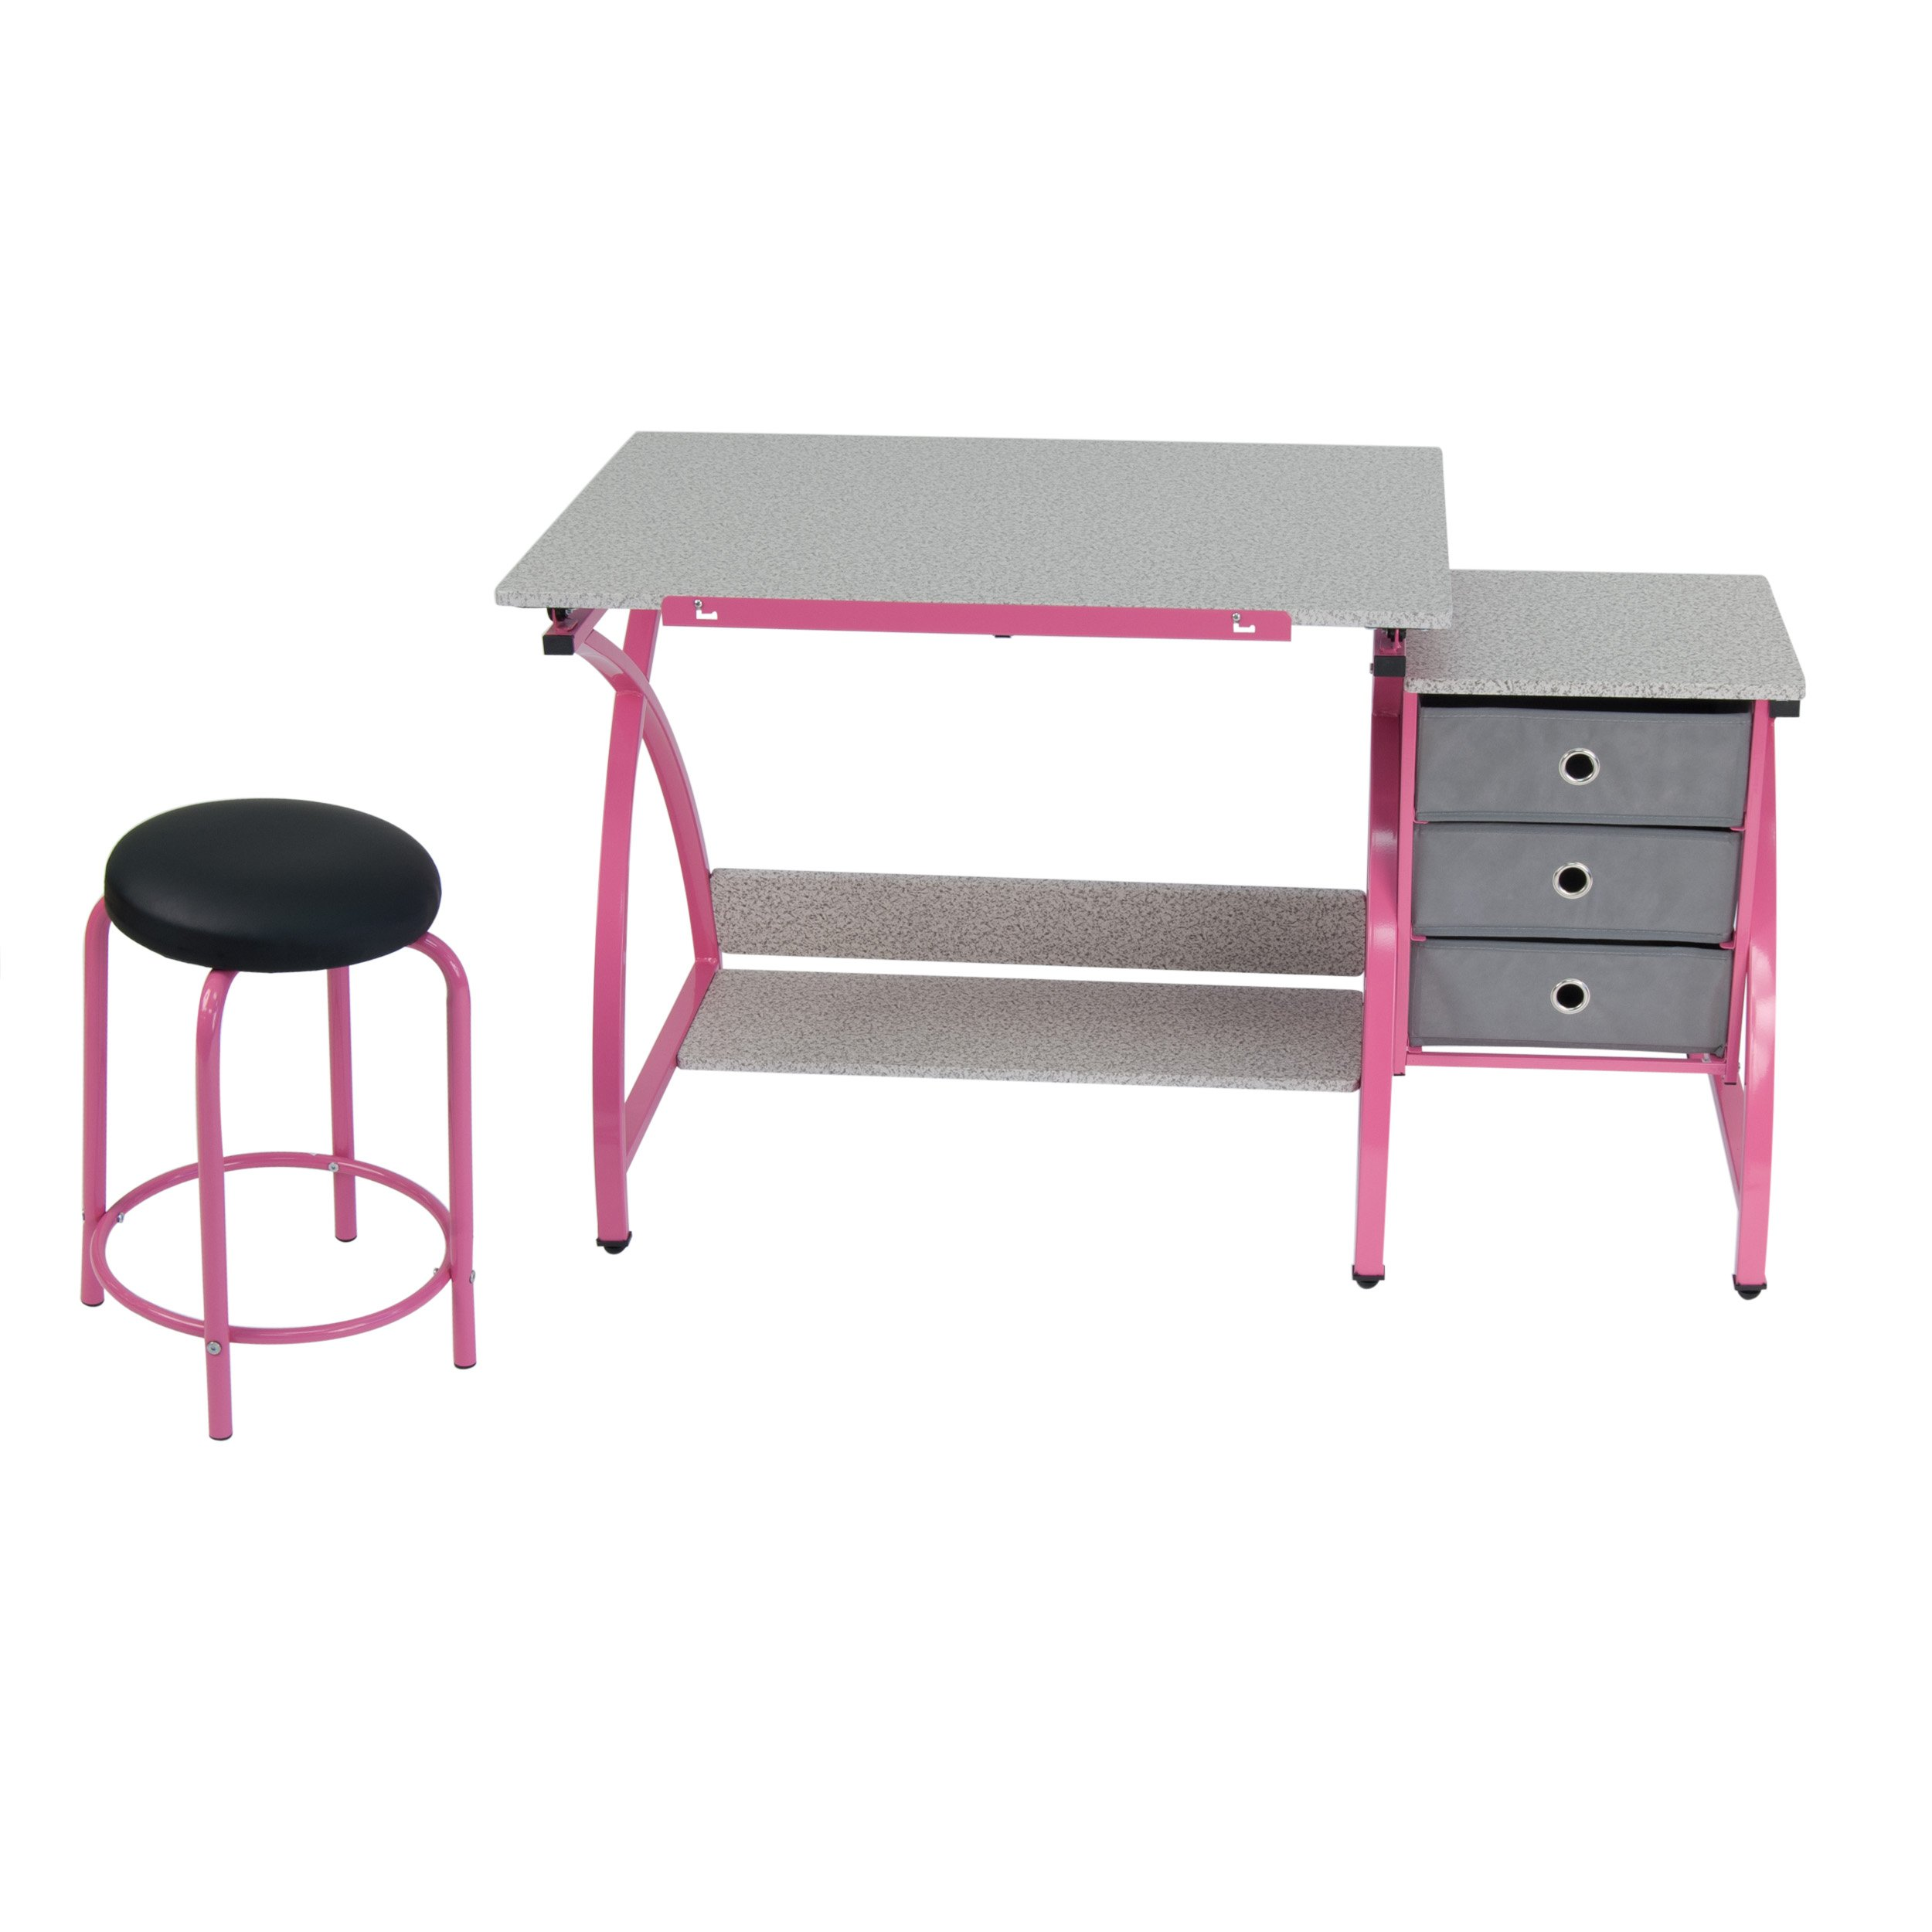 Comet Center with Stool in Pink / Spatter Gray by SD Studio Designs (Image #5)